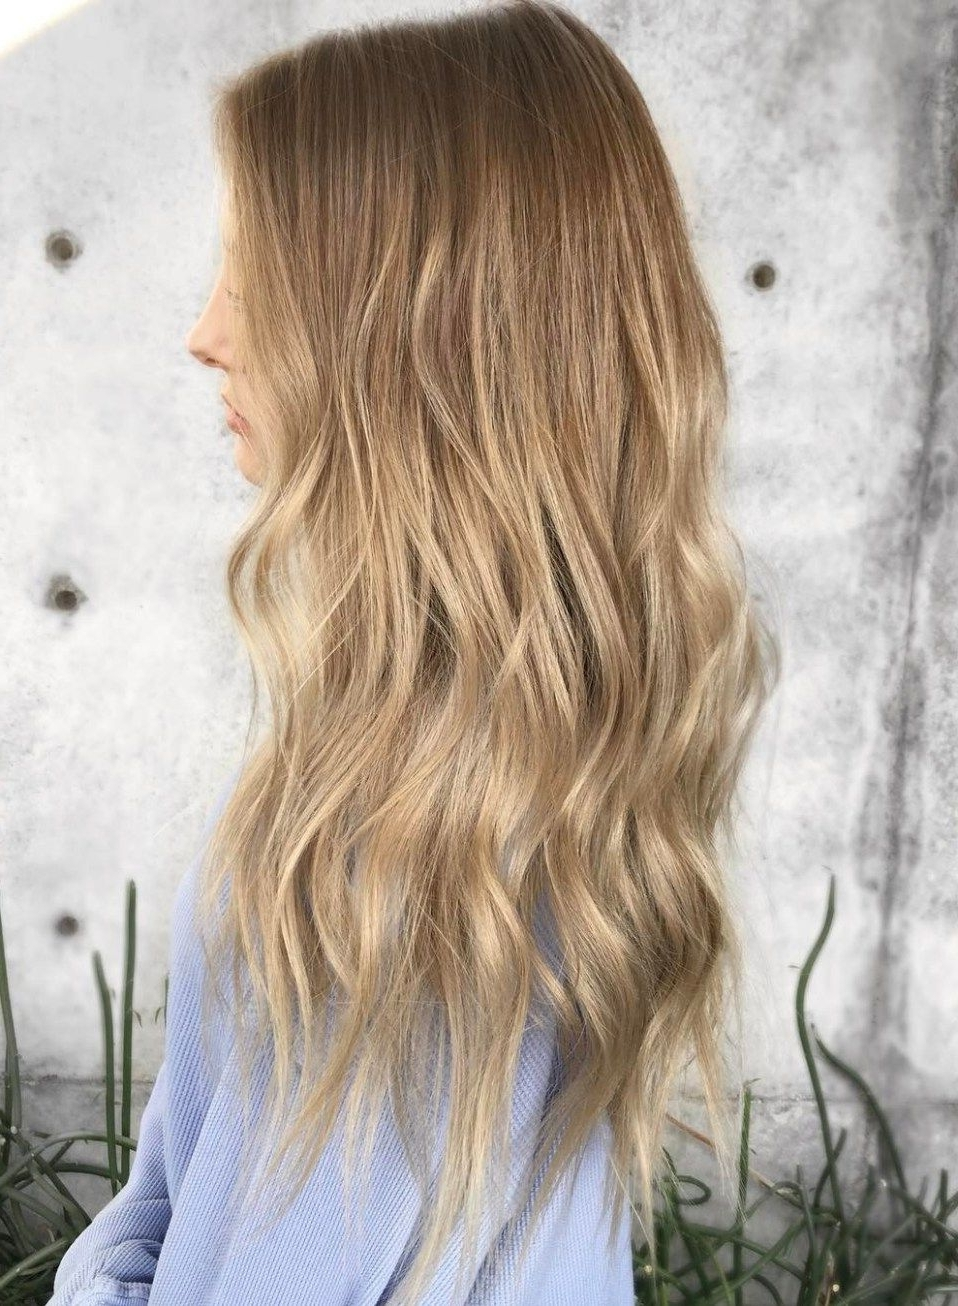 Well Known Subtle Blonde Ombre In 50 Blonde Hair Color Ideas For The Current Season (View 18 of 20)